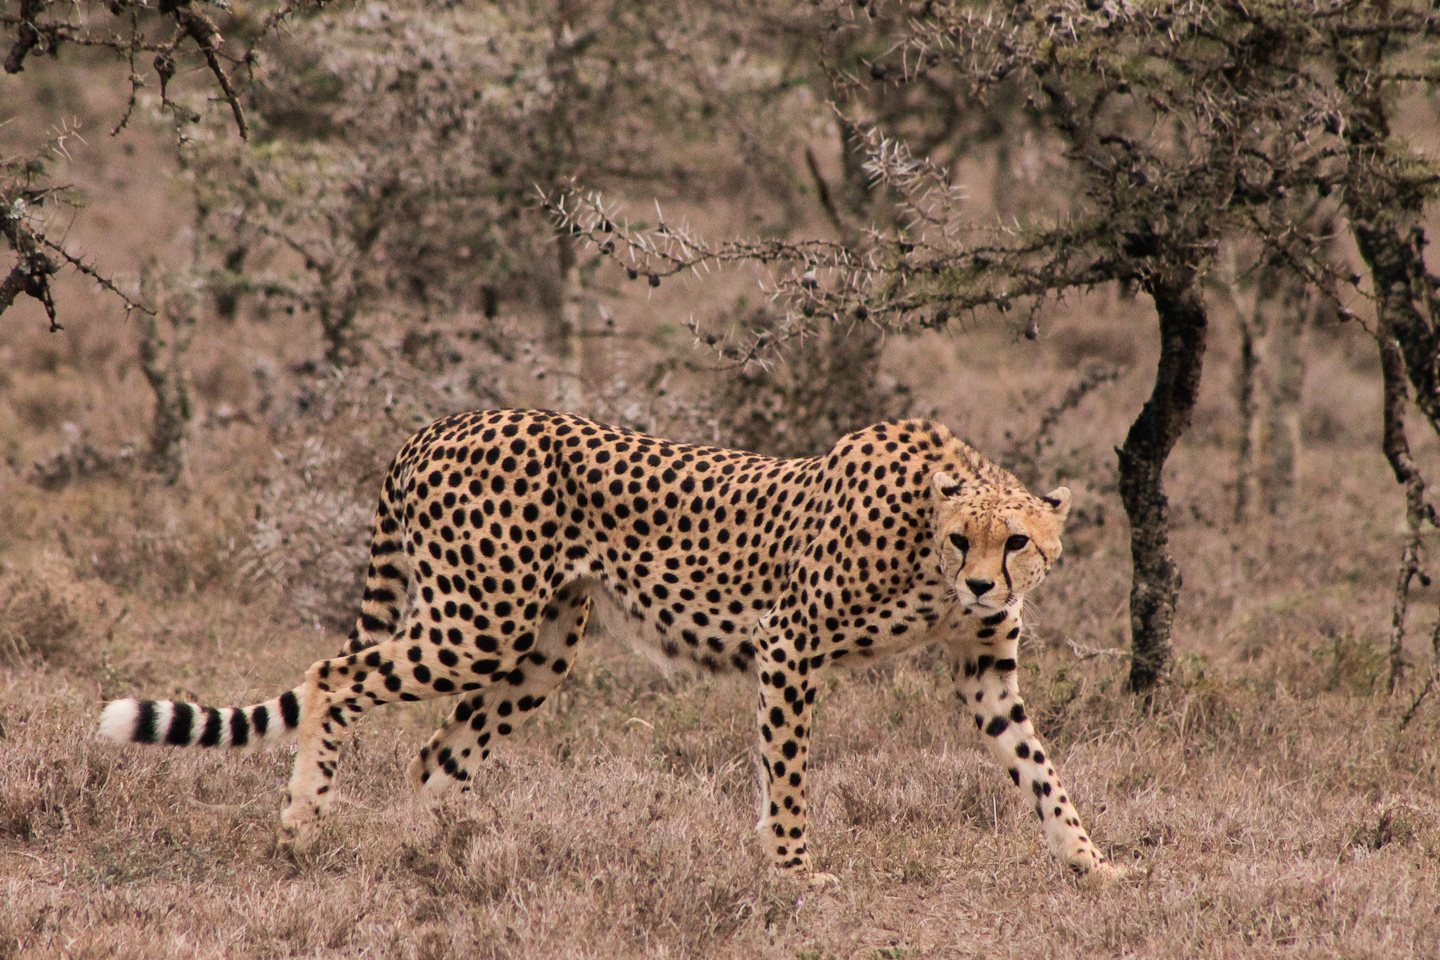 A very special cheetah sighting